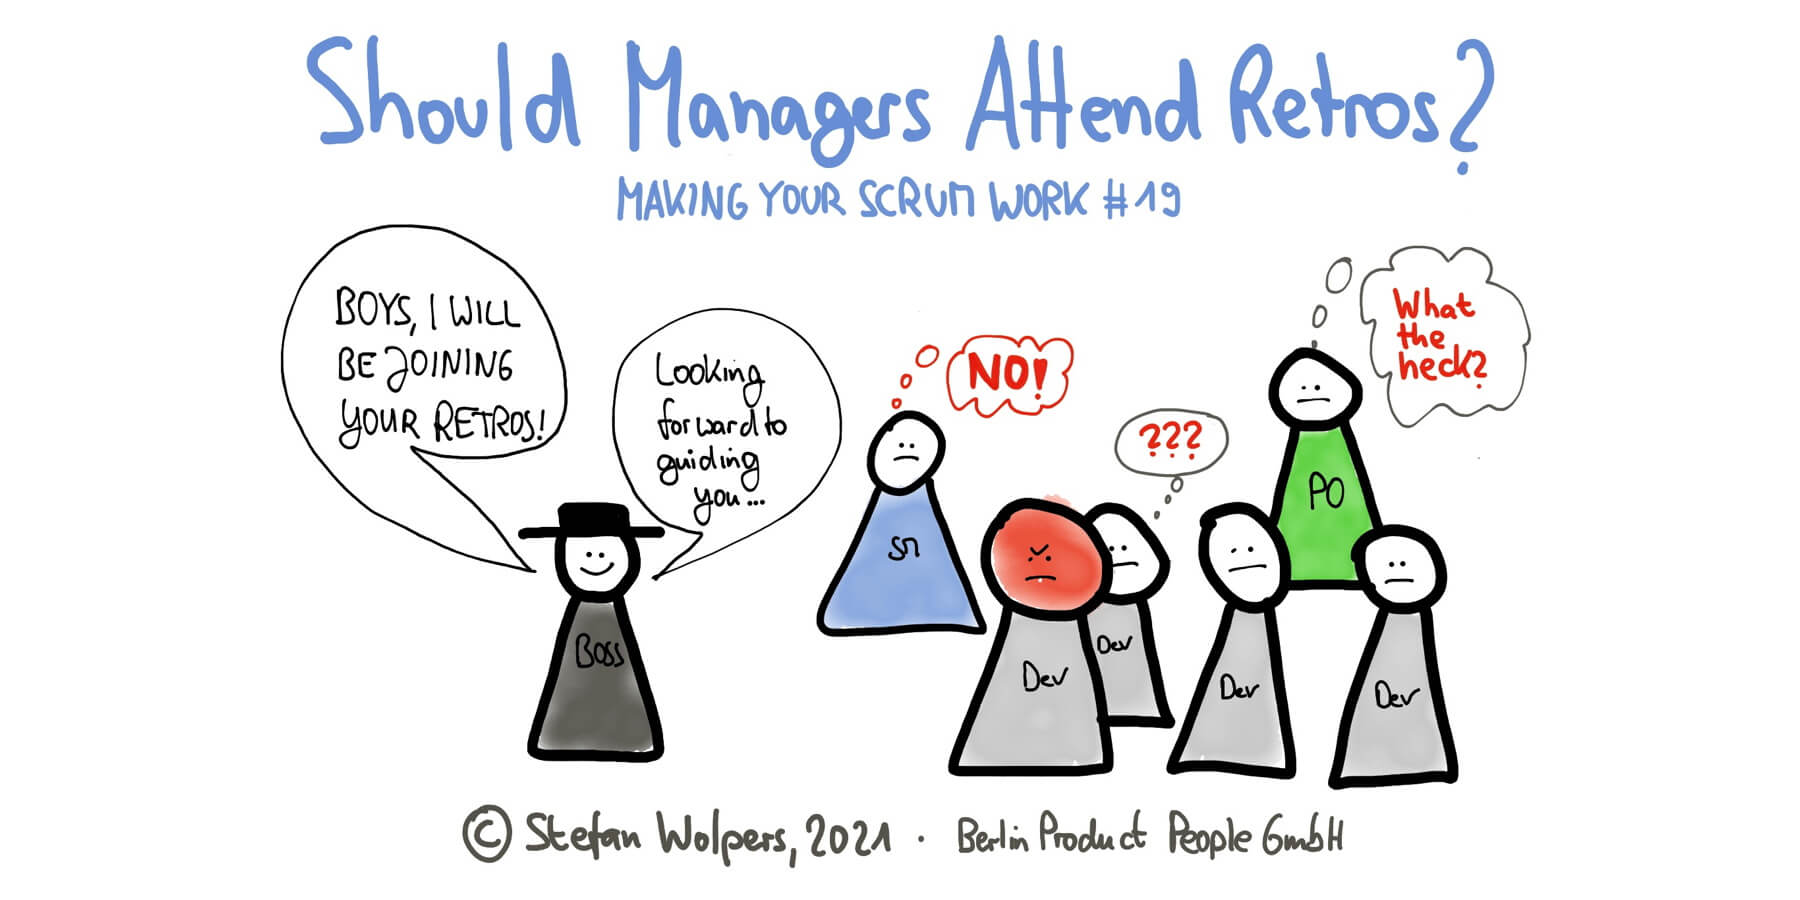 Should Managers Attend Retrospectives? — Making Your Scrum Work #19